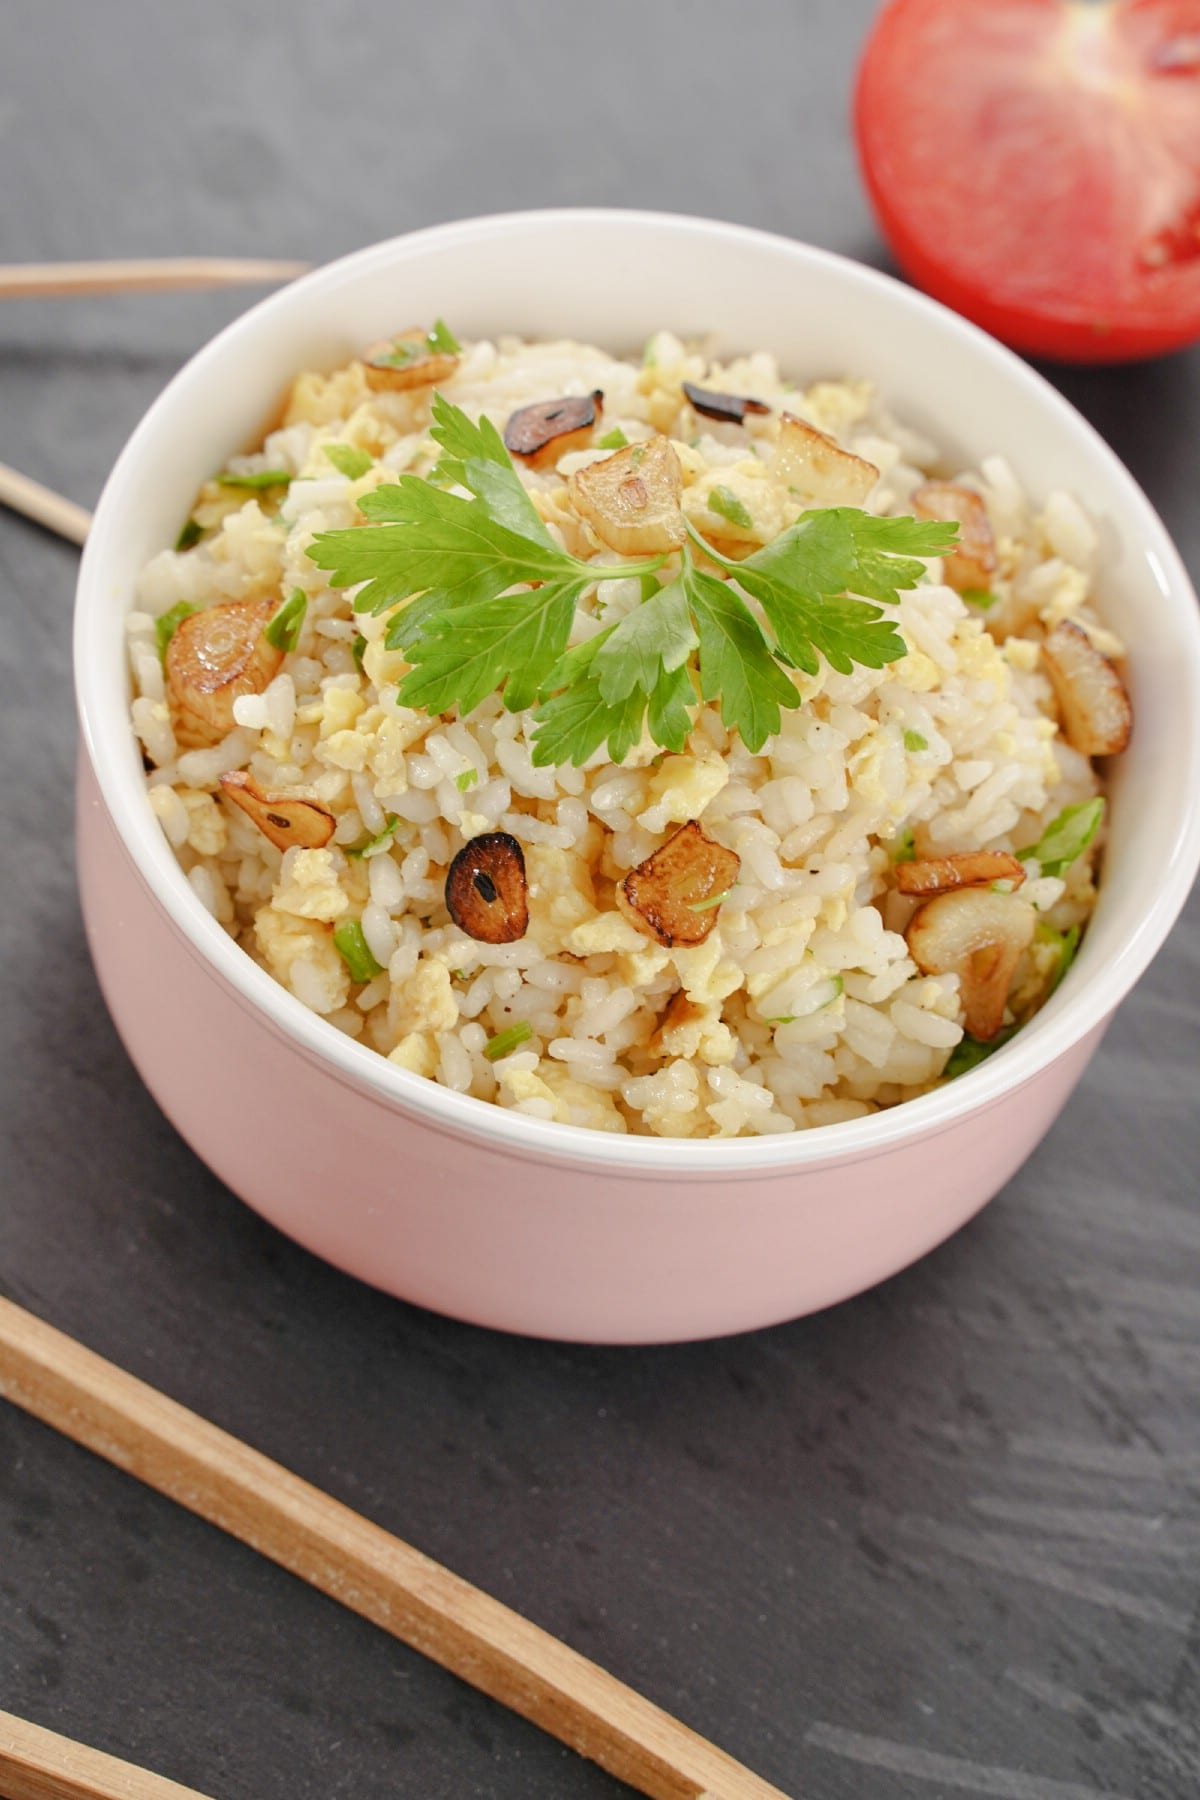 Large white bowl of rice on gray table